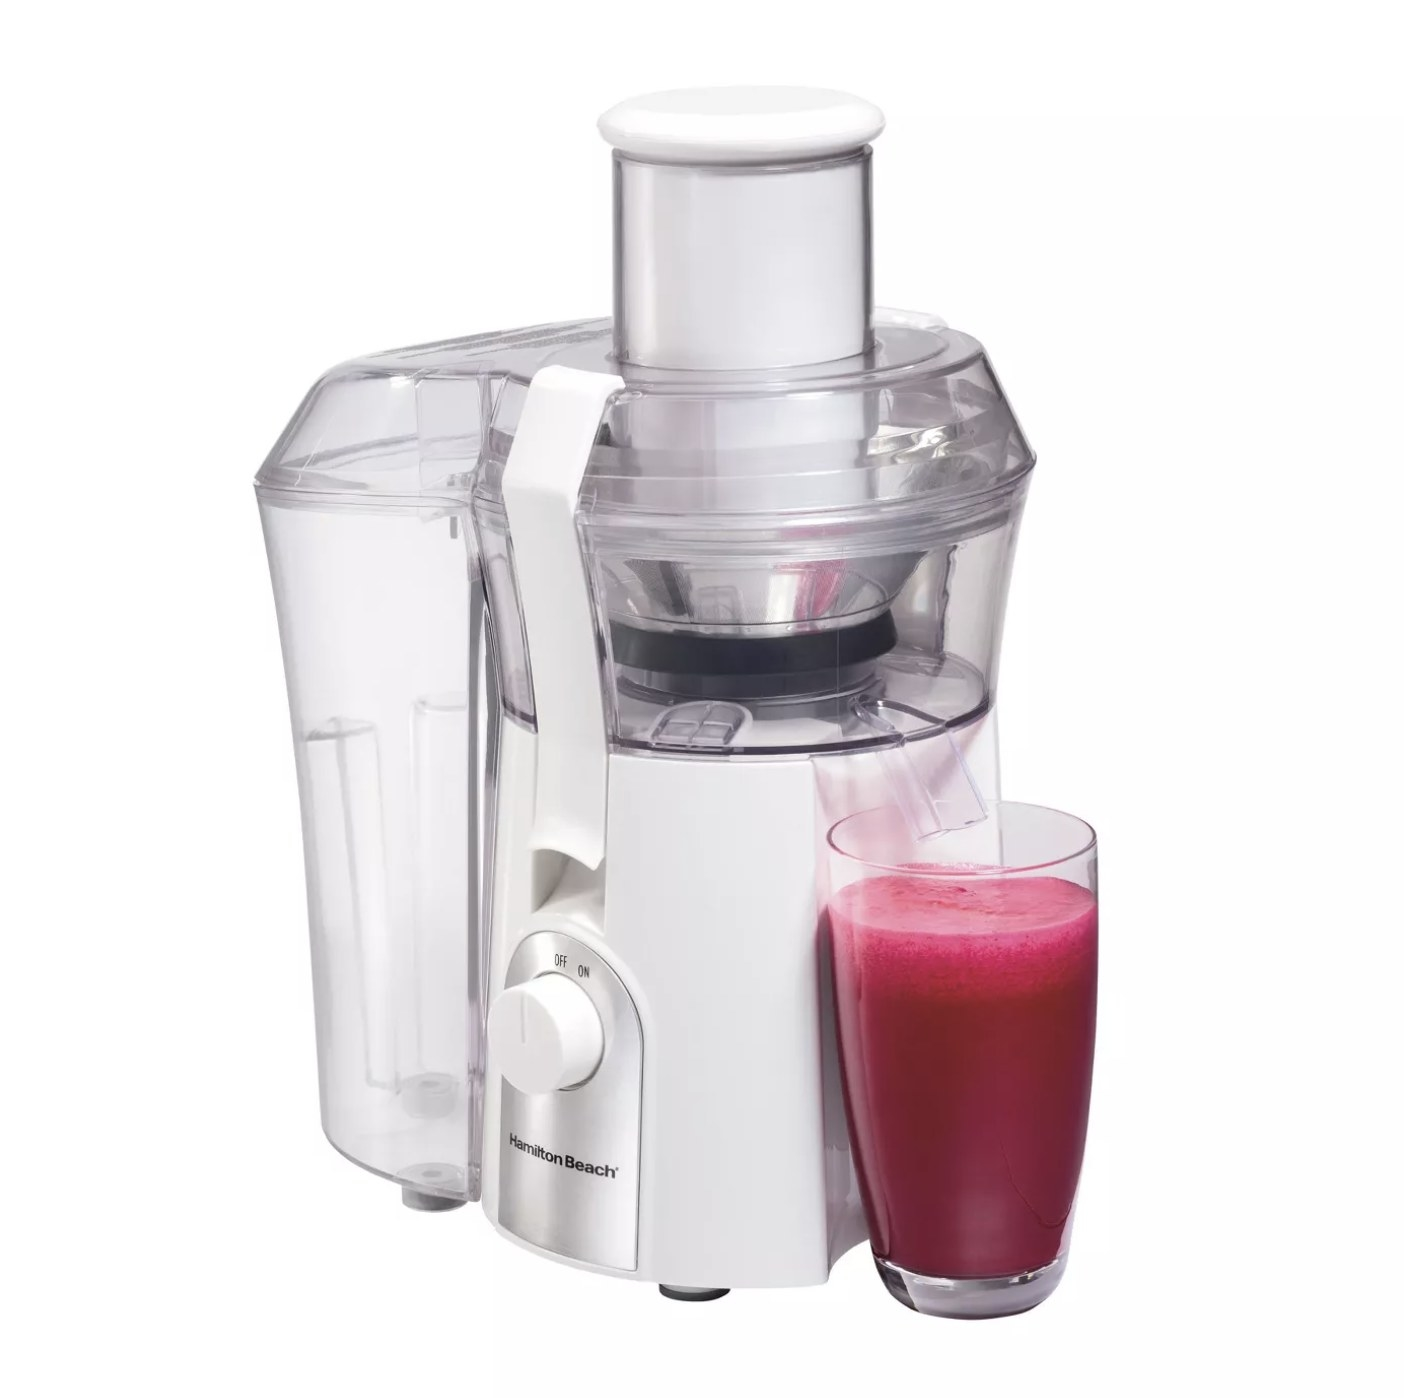 A juice extractor